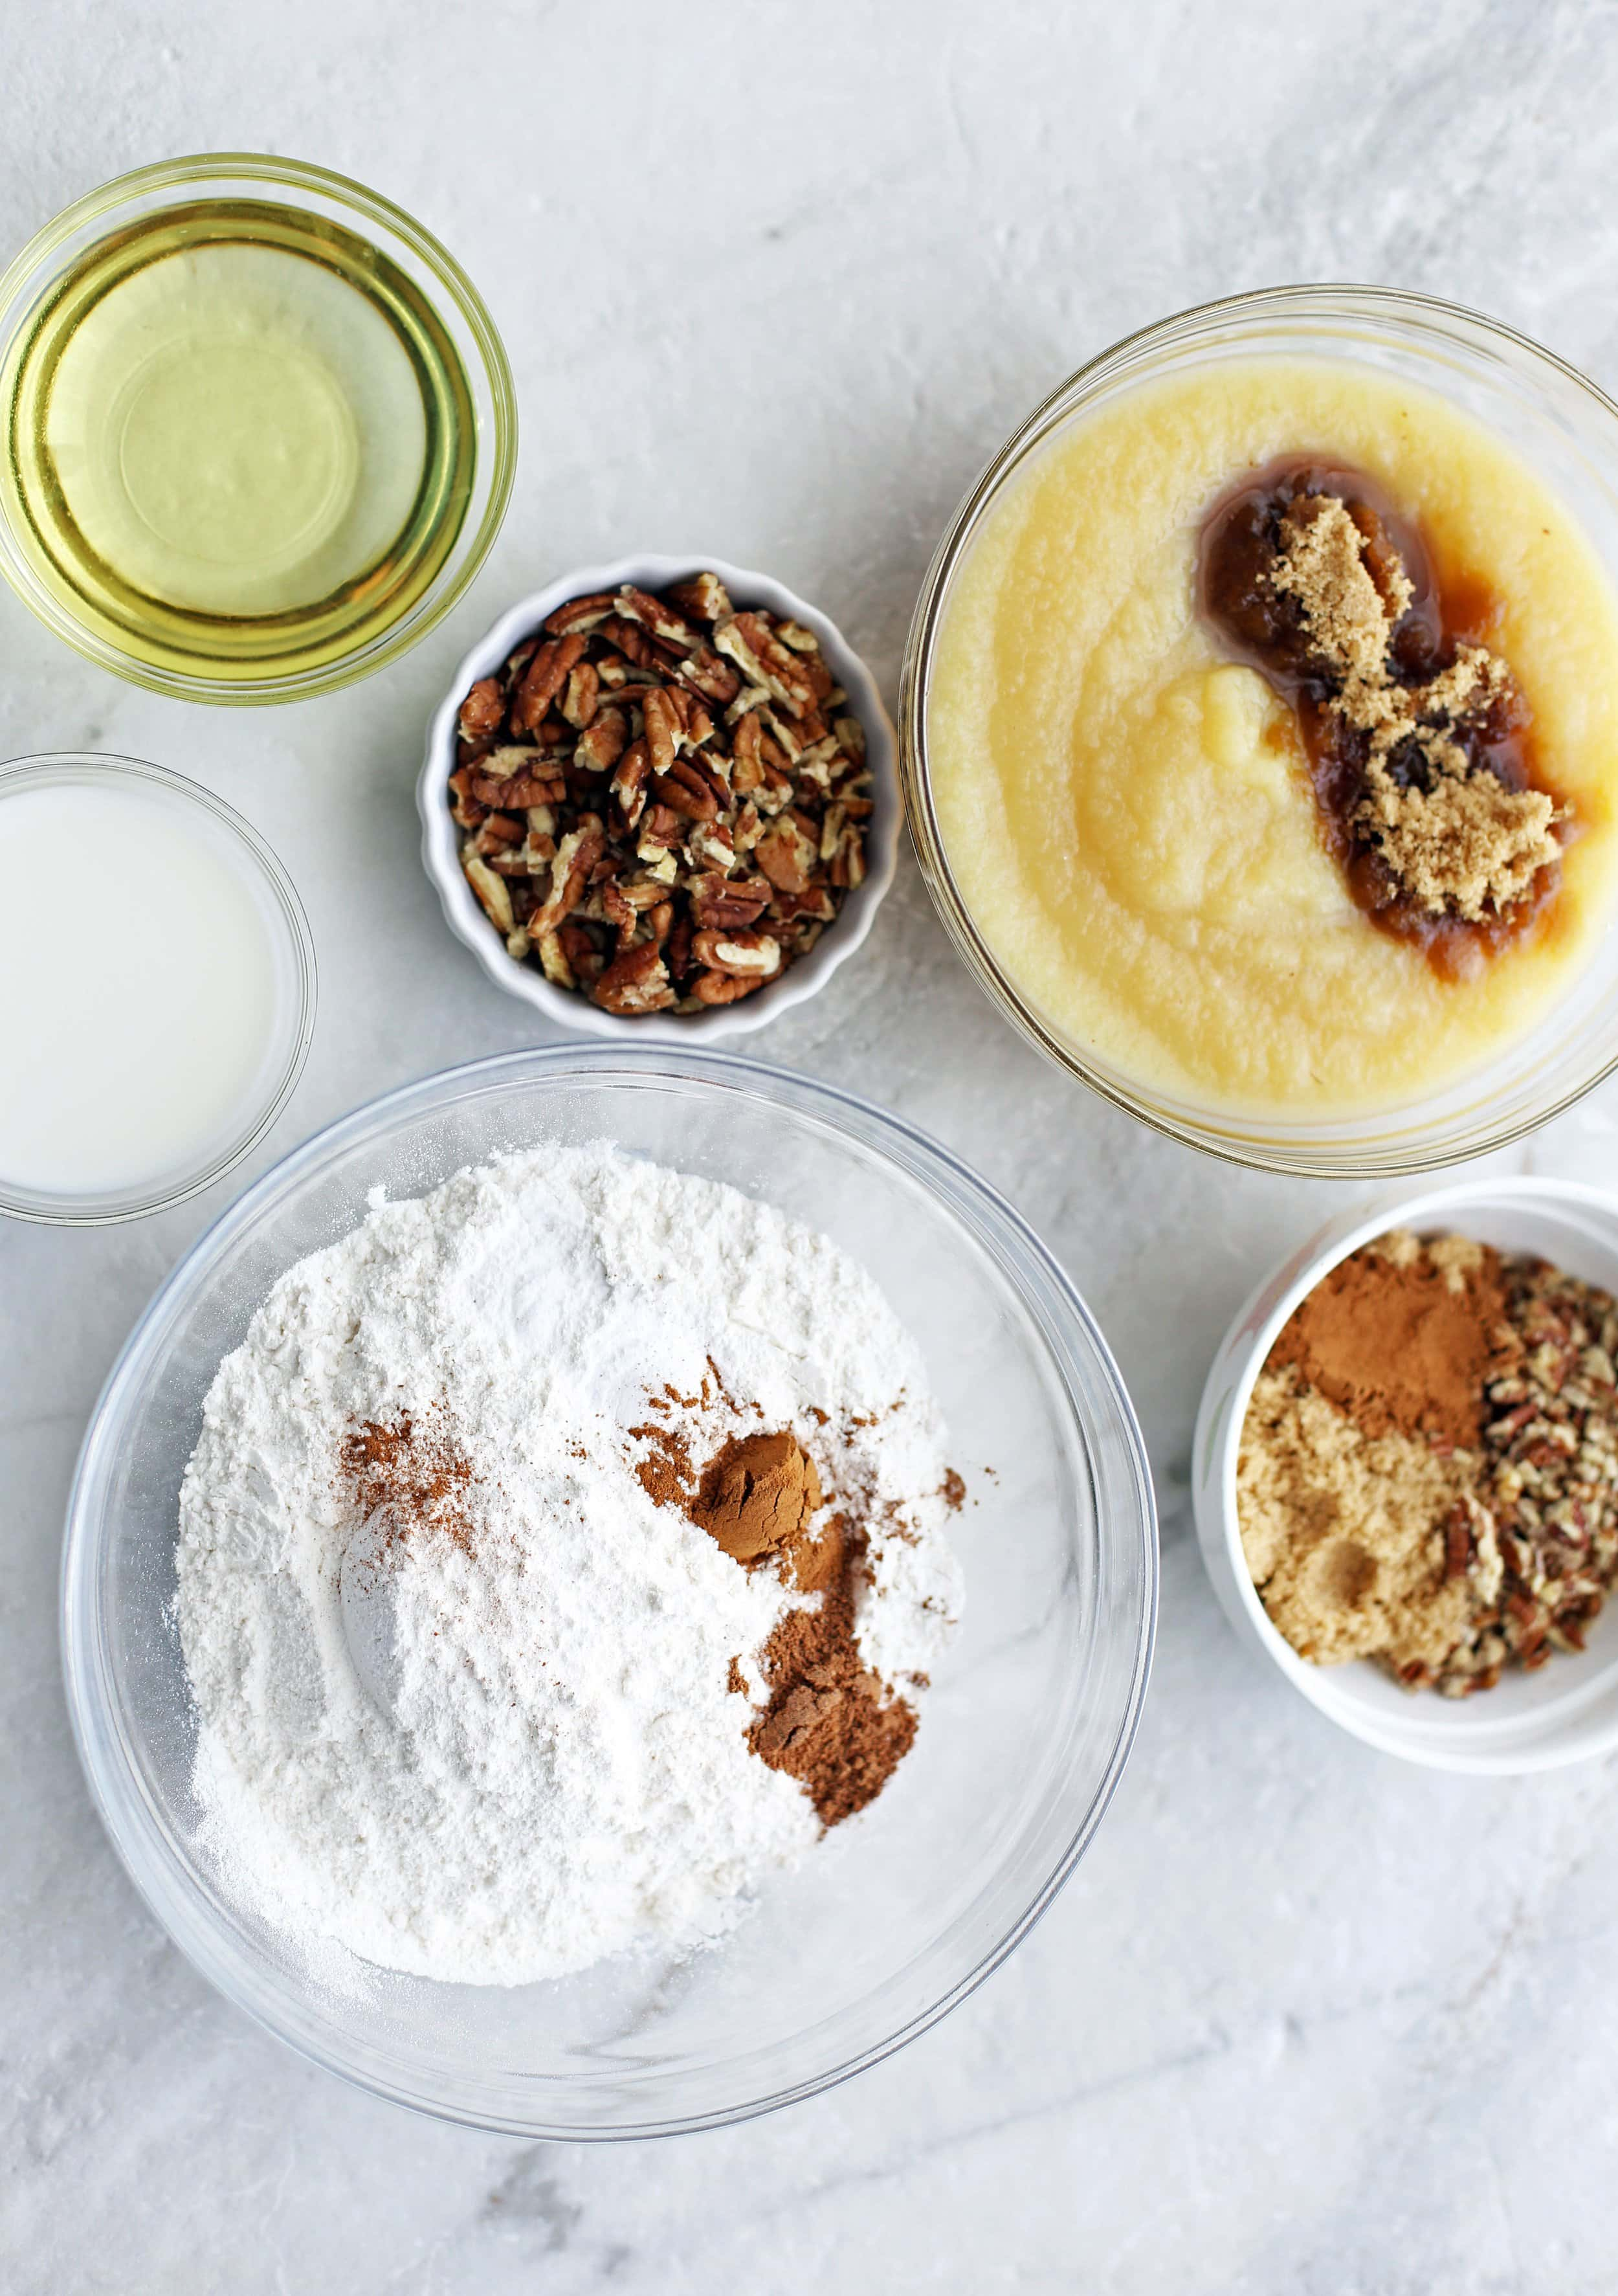 Bowls of applesauce, sugar, spices, pecans, milk, and baking soda.